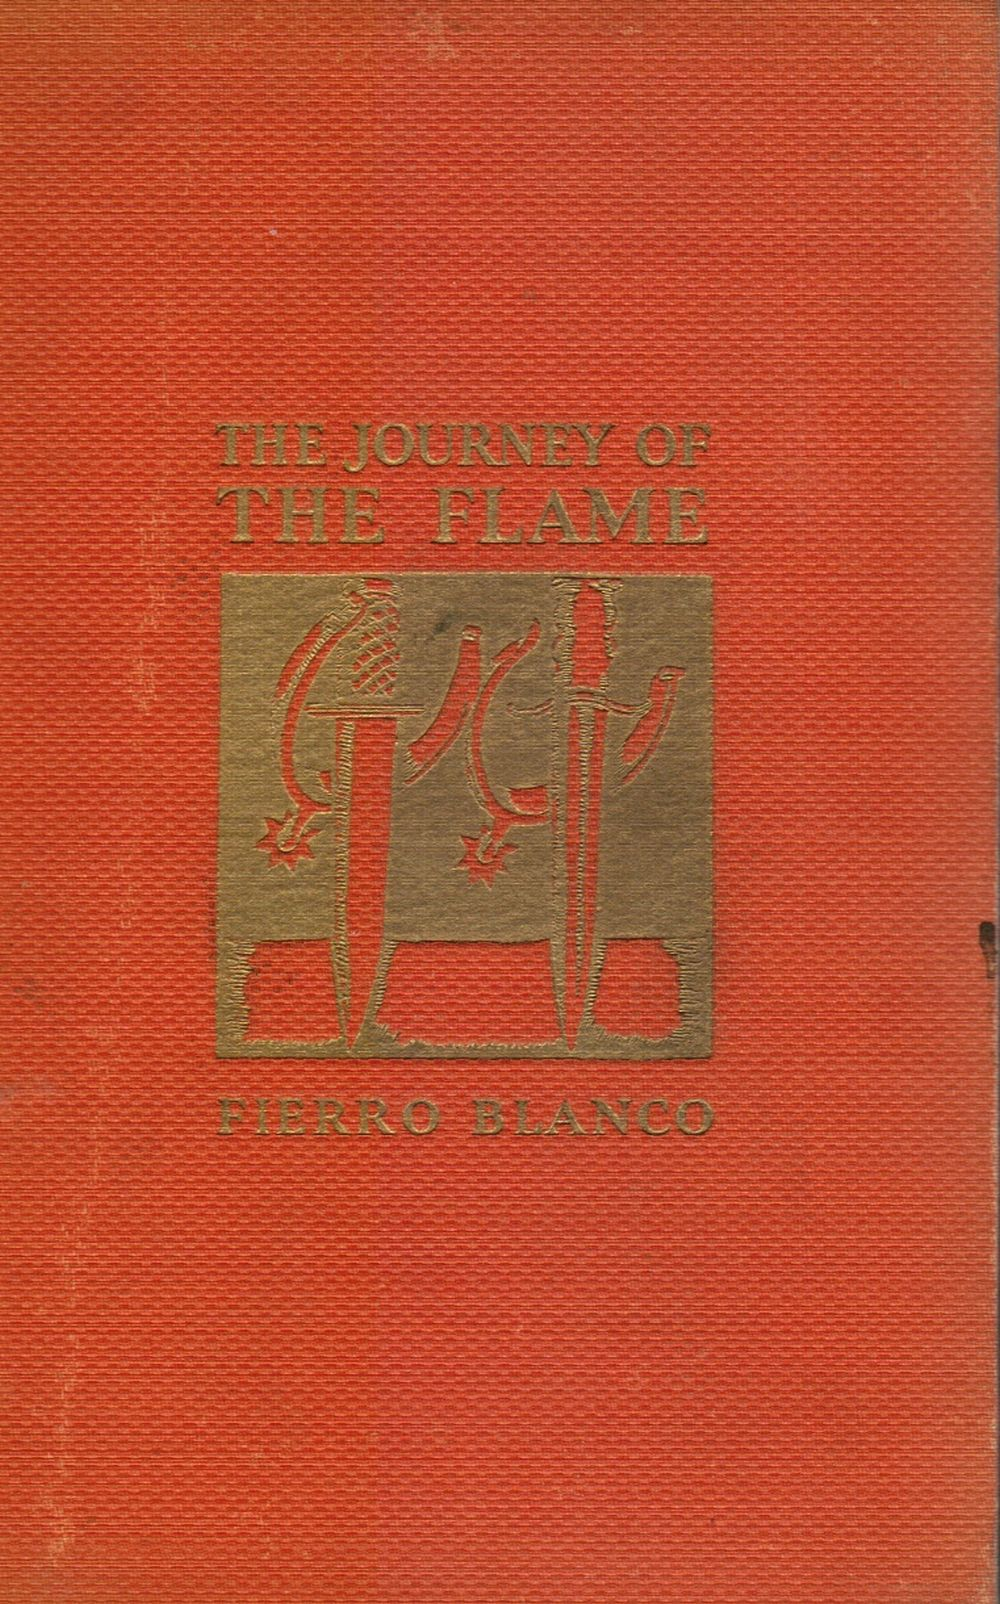 Image for The Journey of the Flame: Being the Account of One Year in the Life of Senor Don Juan Orbigon